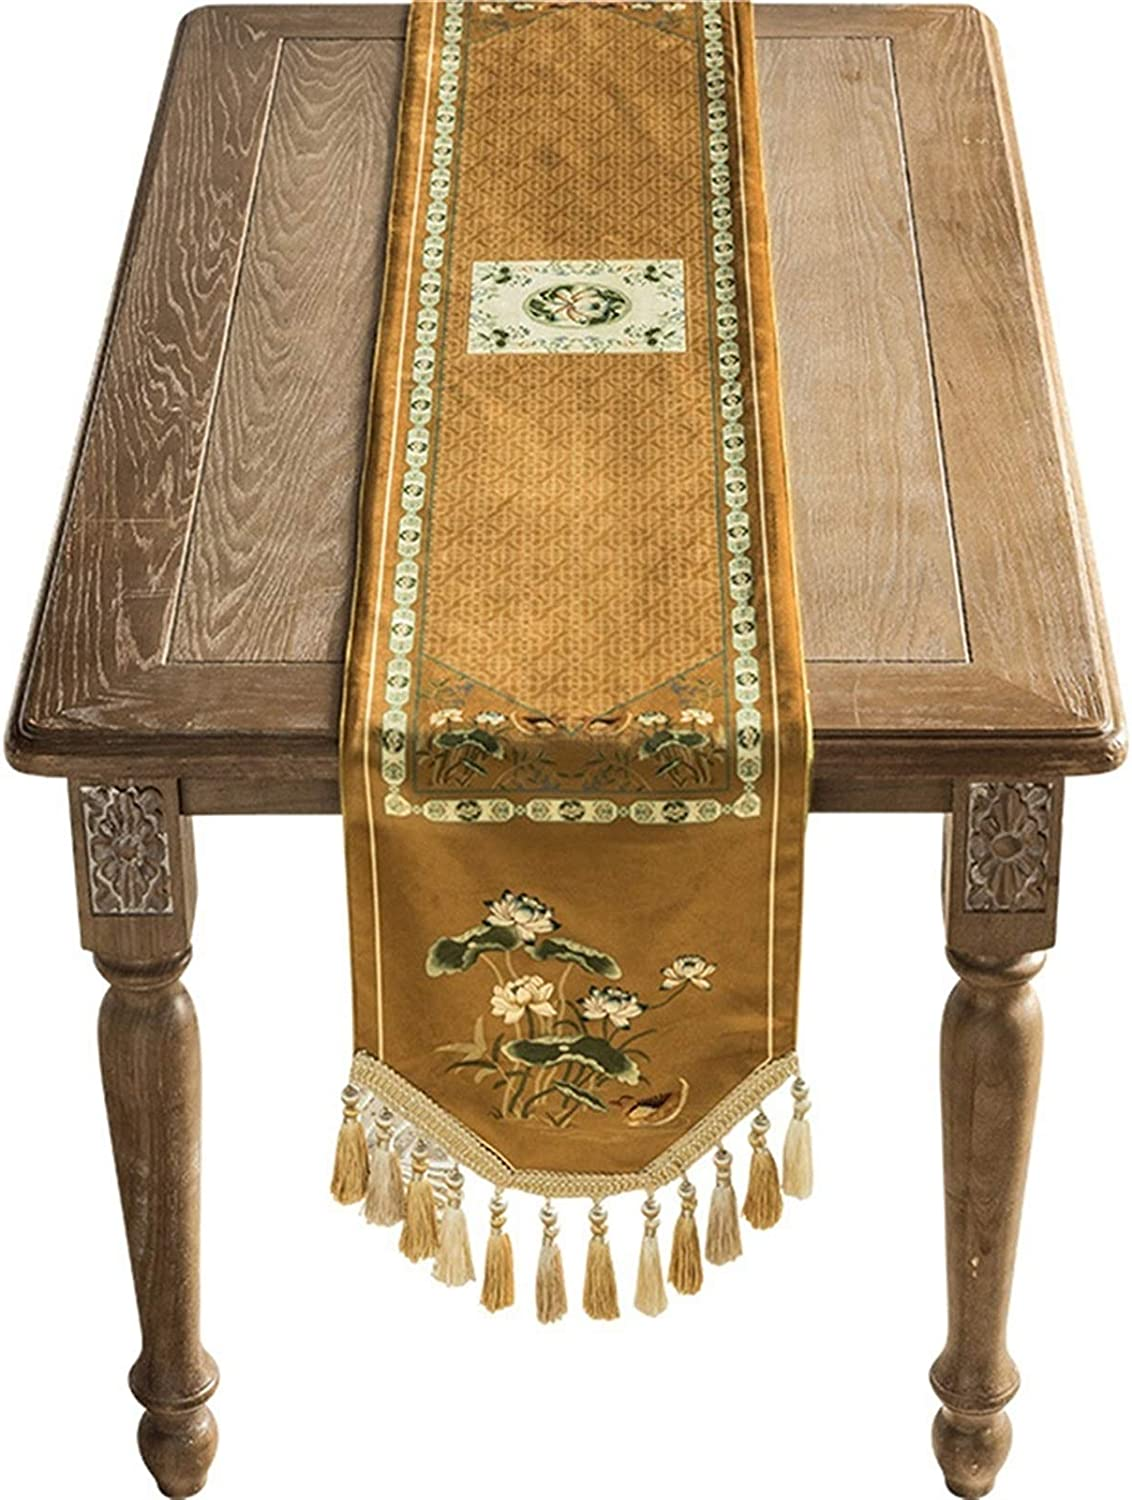 WZHONG Light Animer and price revision Cloud Lotus Chinese Table Runner Luxury D New popularity Flag Bed